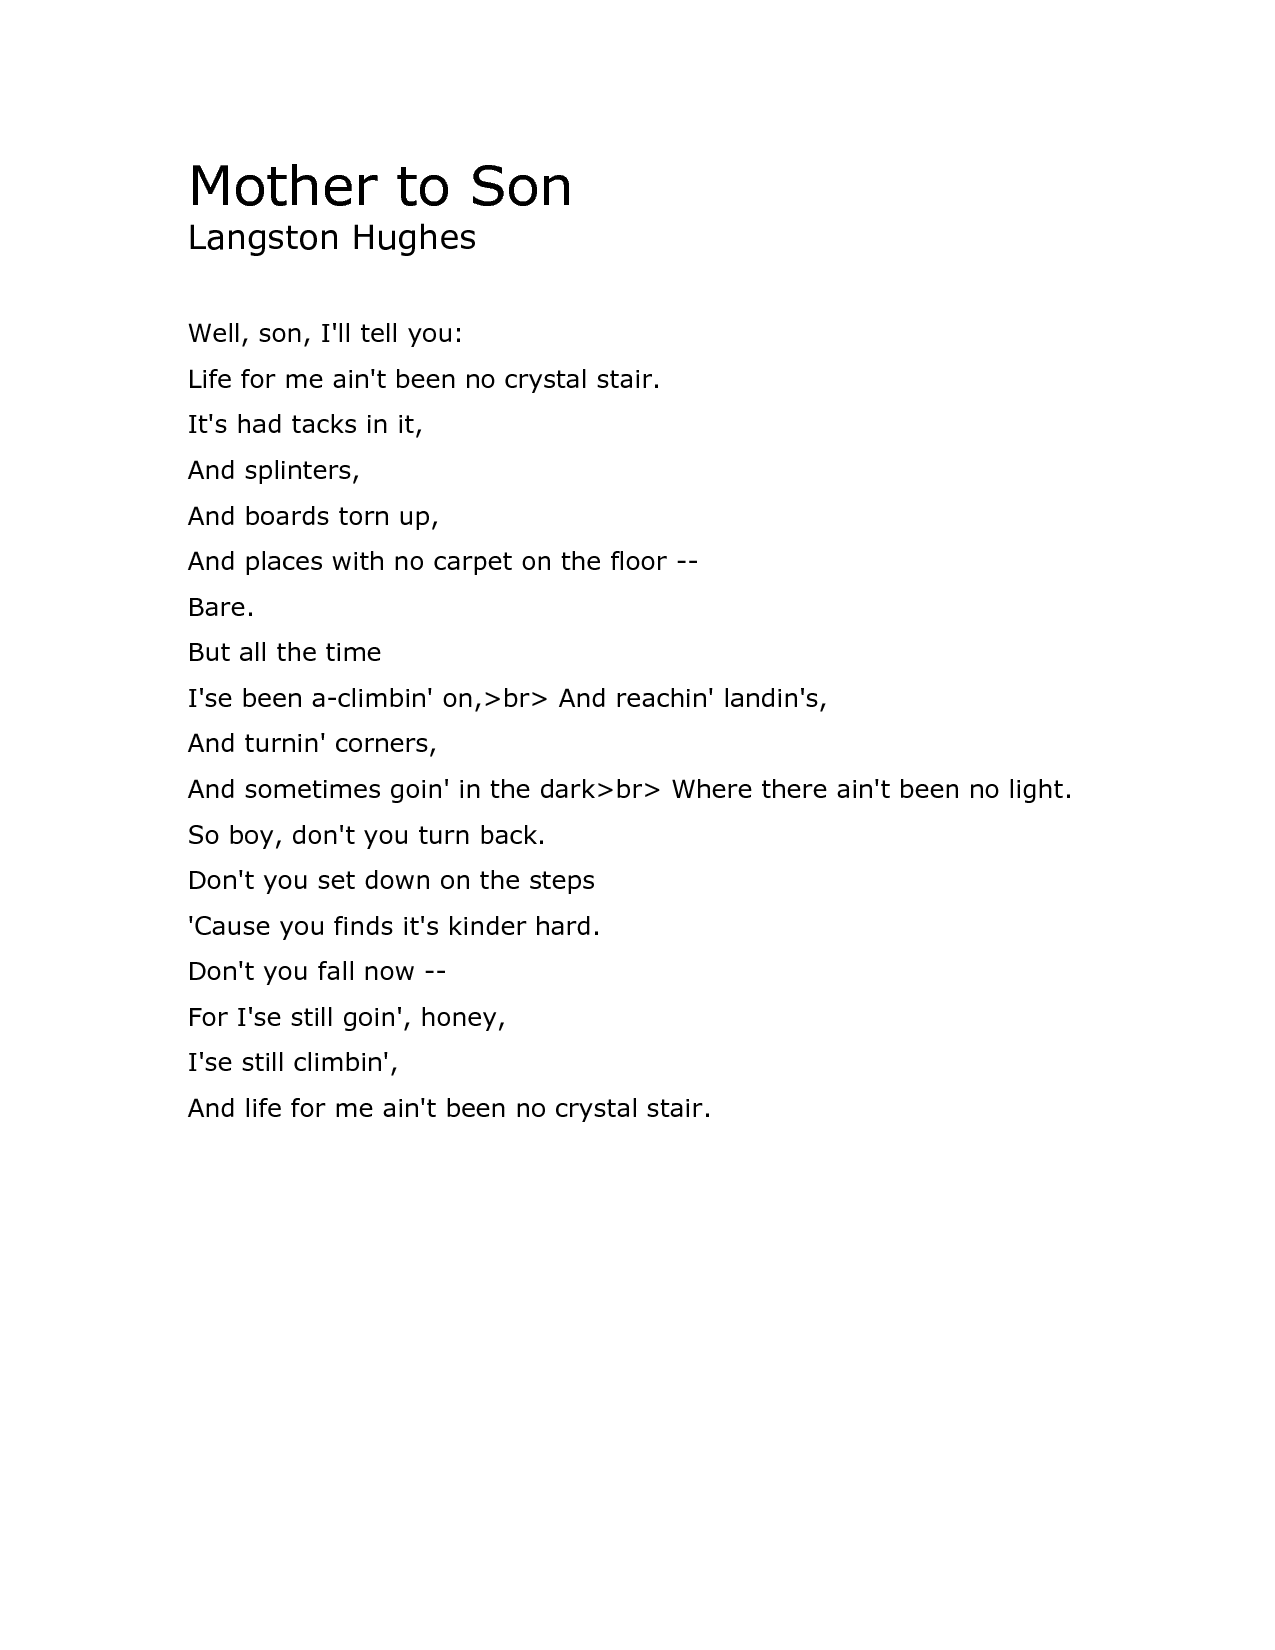 essay on langston hughes harlem